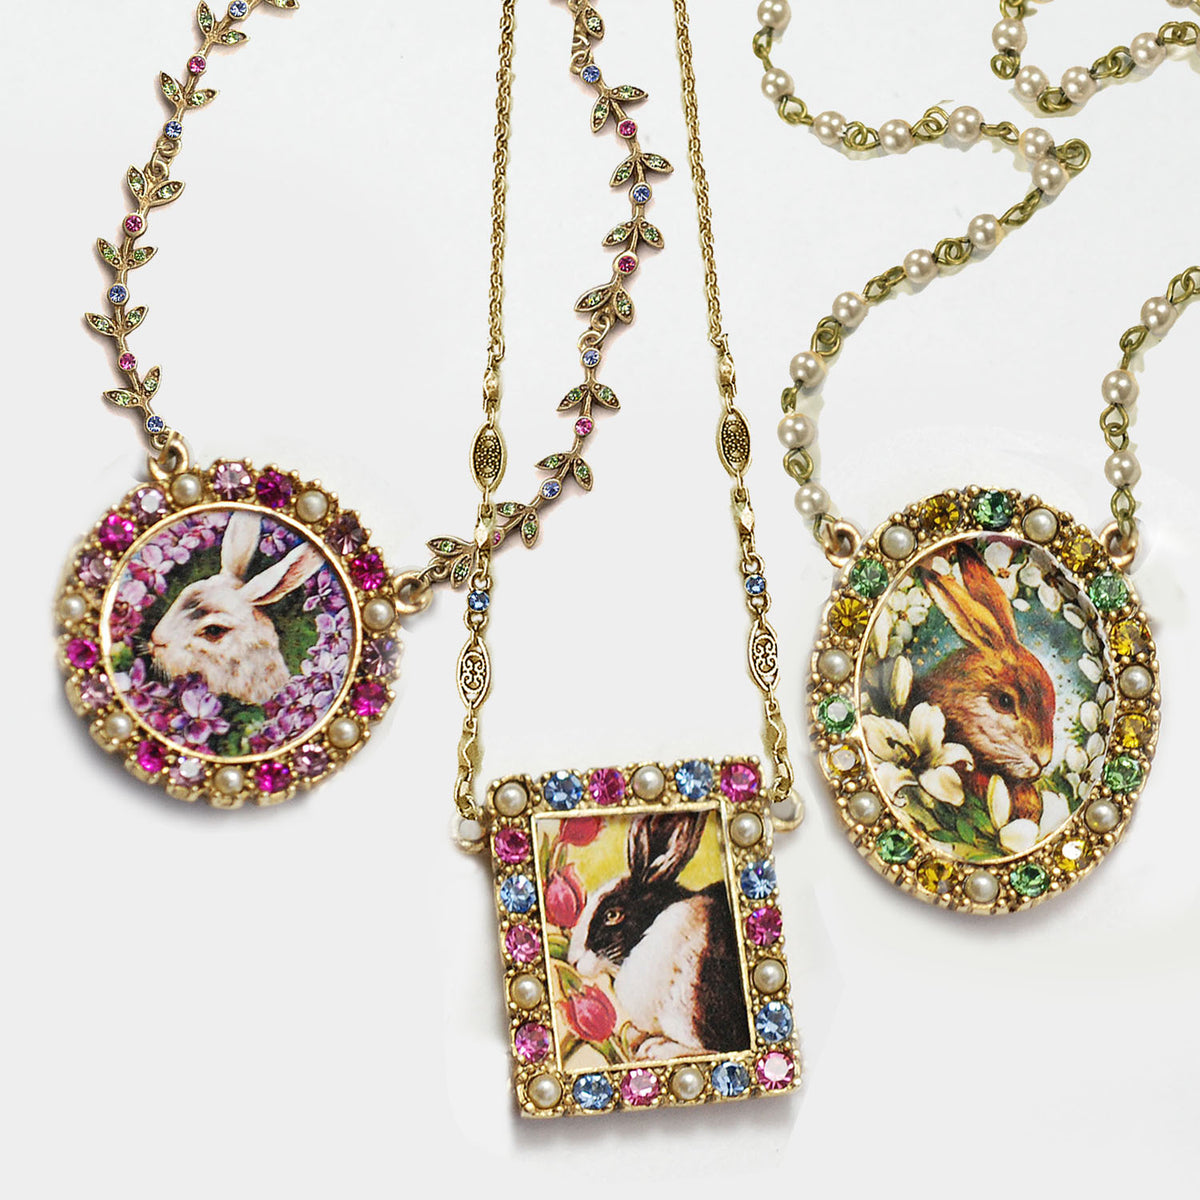 Garden of Bunnies Necklace N1644 - PRE-ORDER